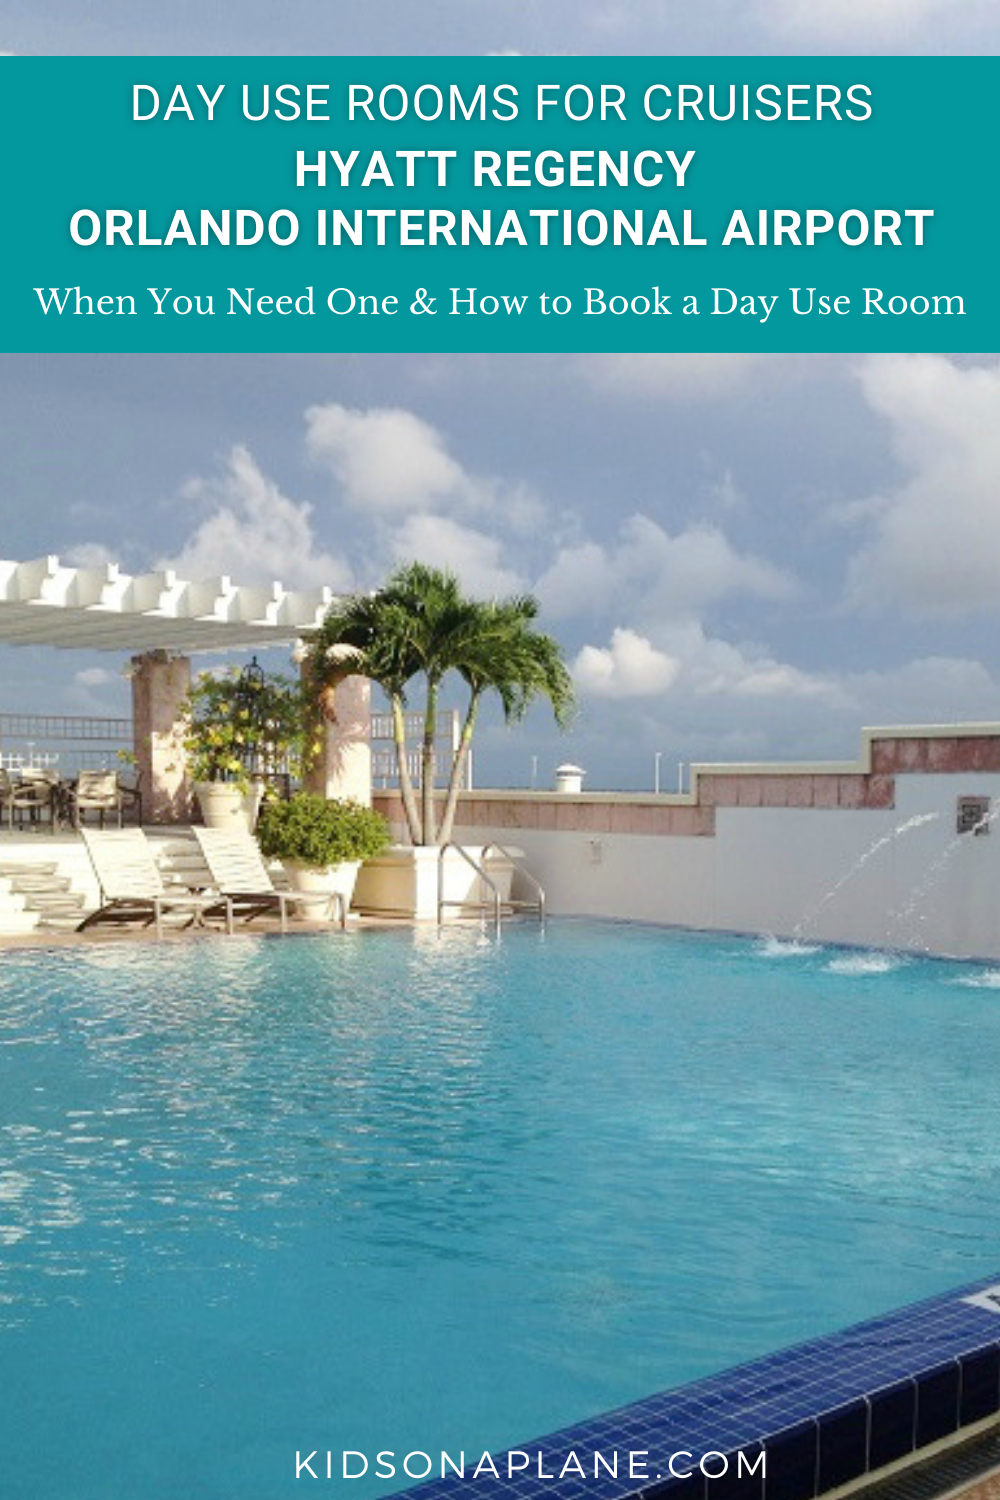 Hyatt Regency Orlando International Airport Day Use Rooms - Tips for Booking One Before or After Your Cruise